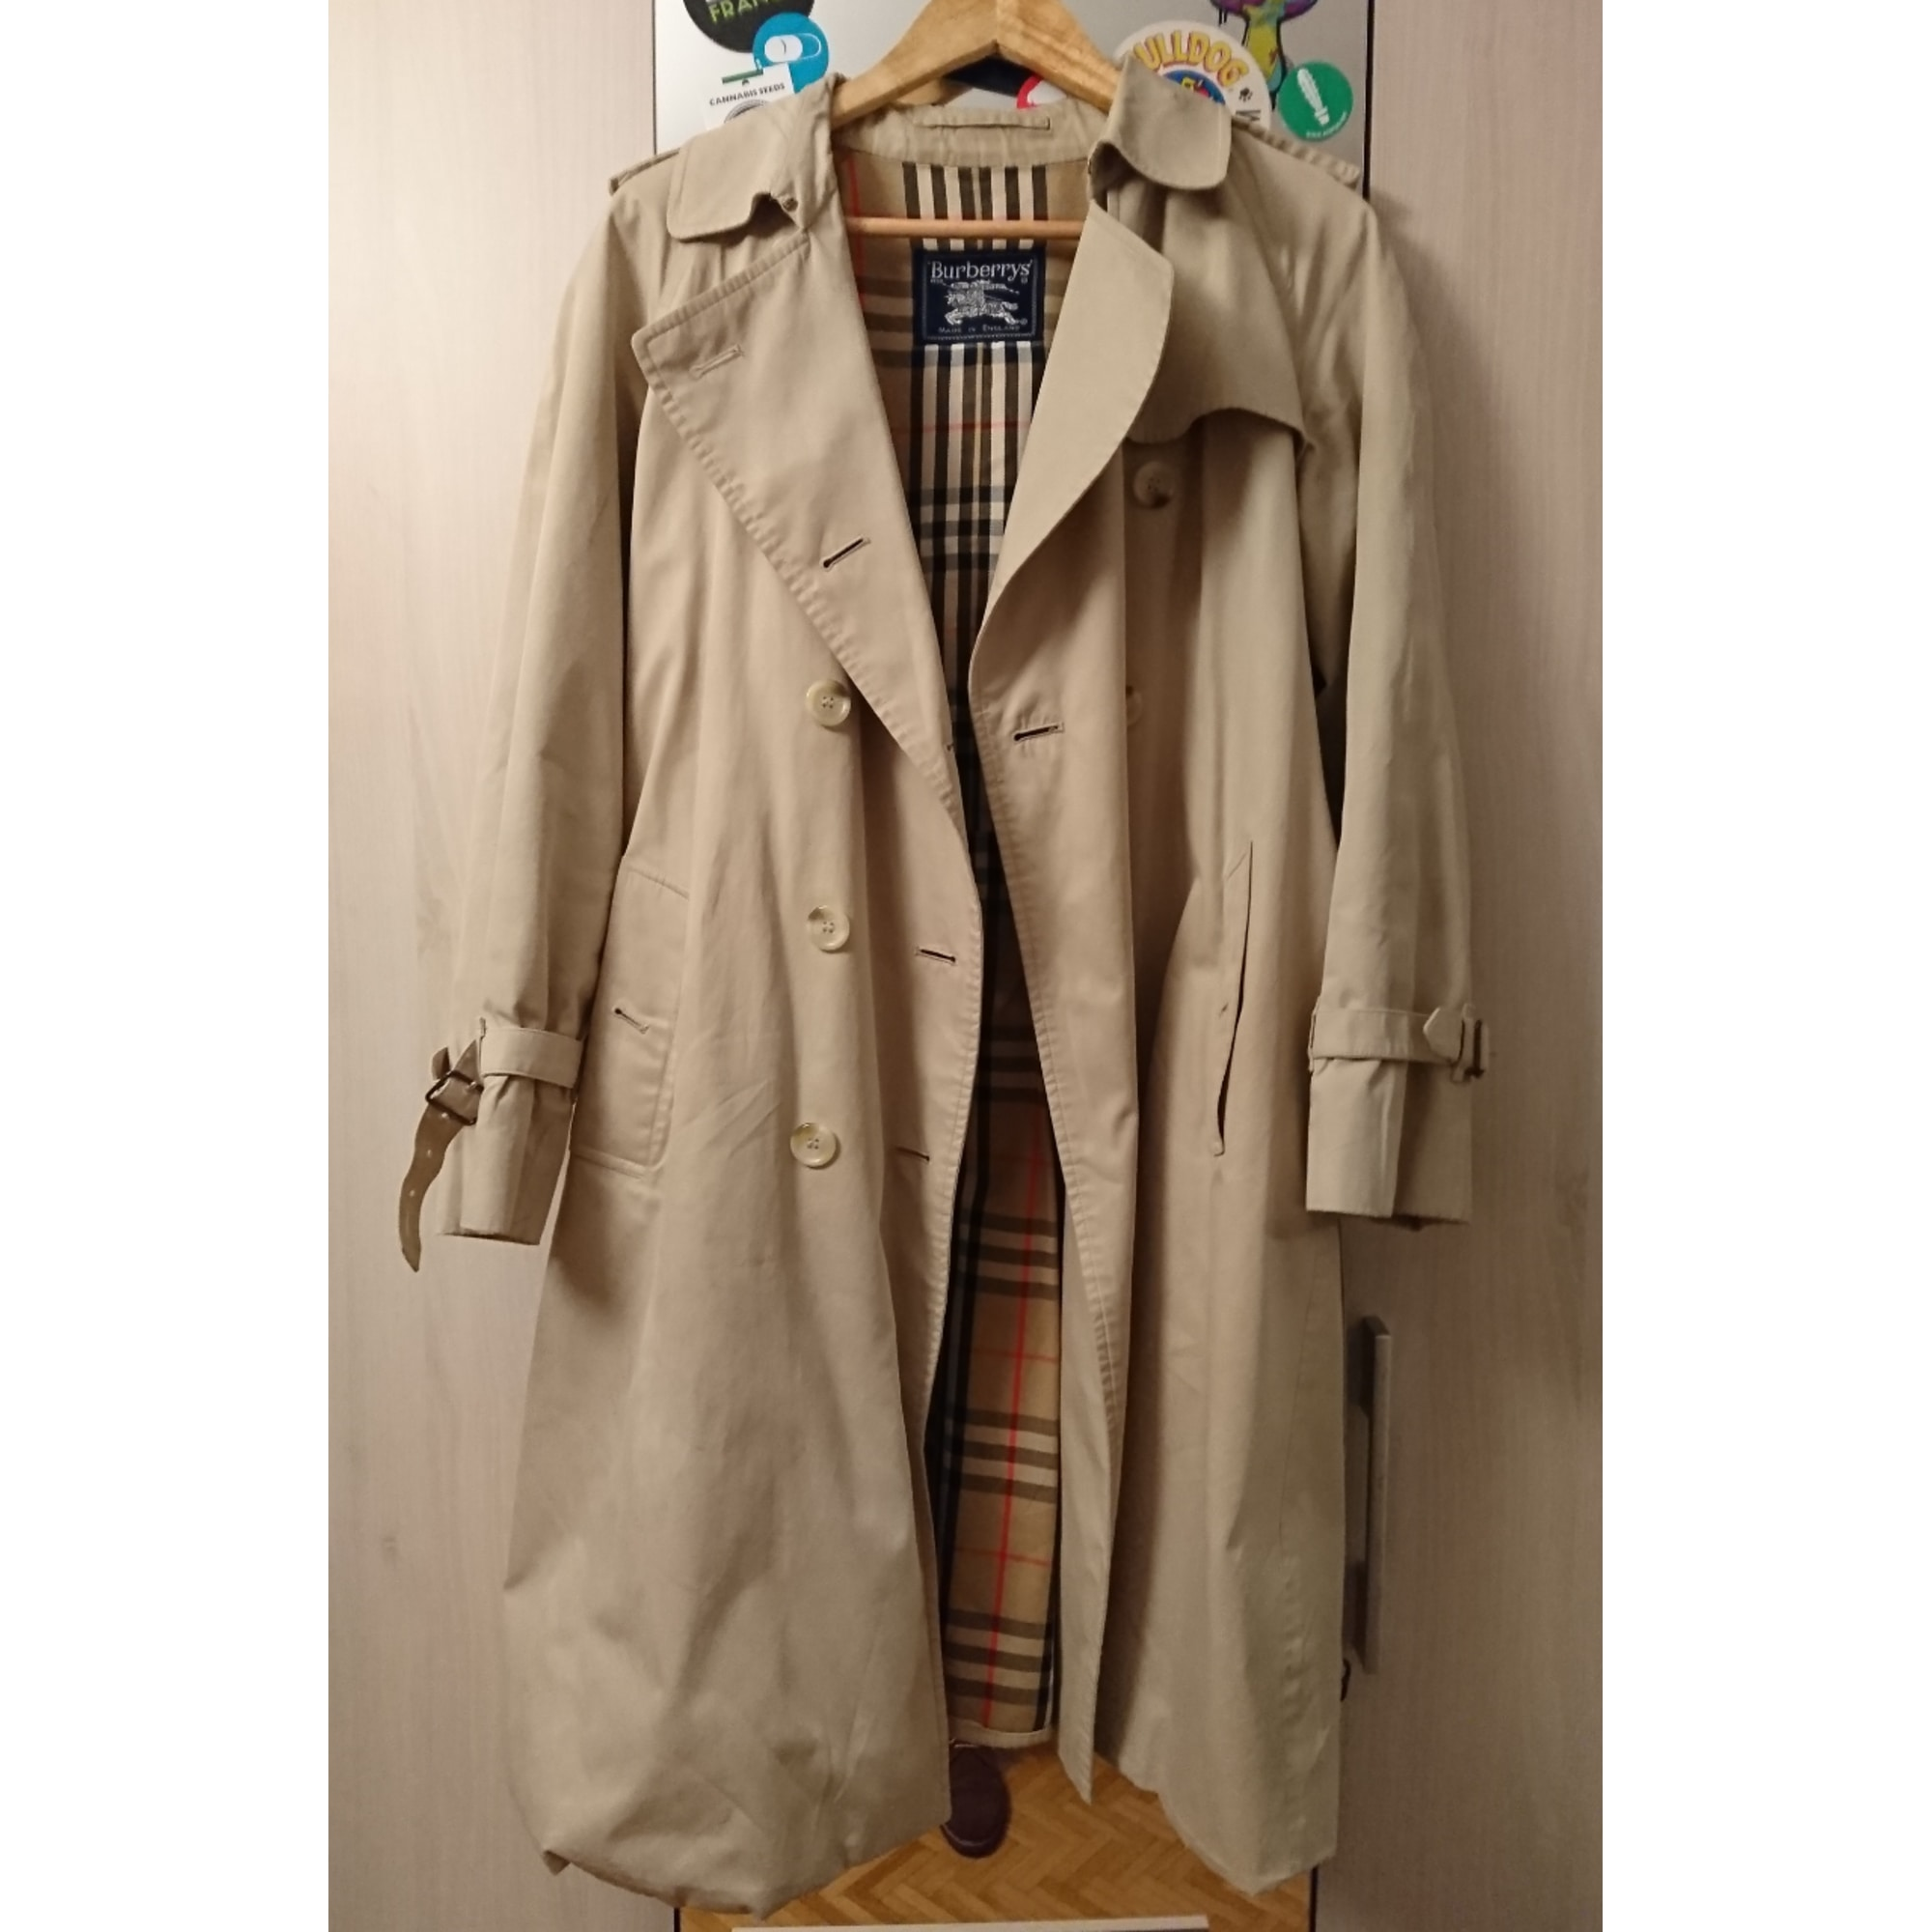 Imperméable, trench BURBERRY 48 (M) blanc 7509891